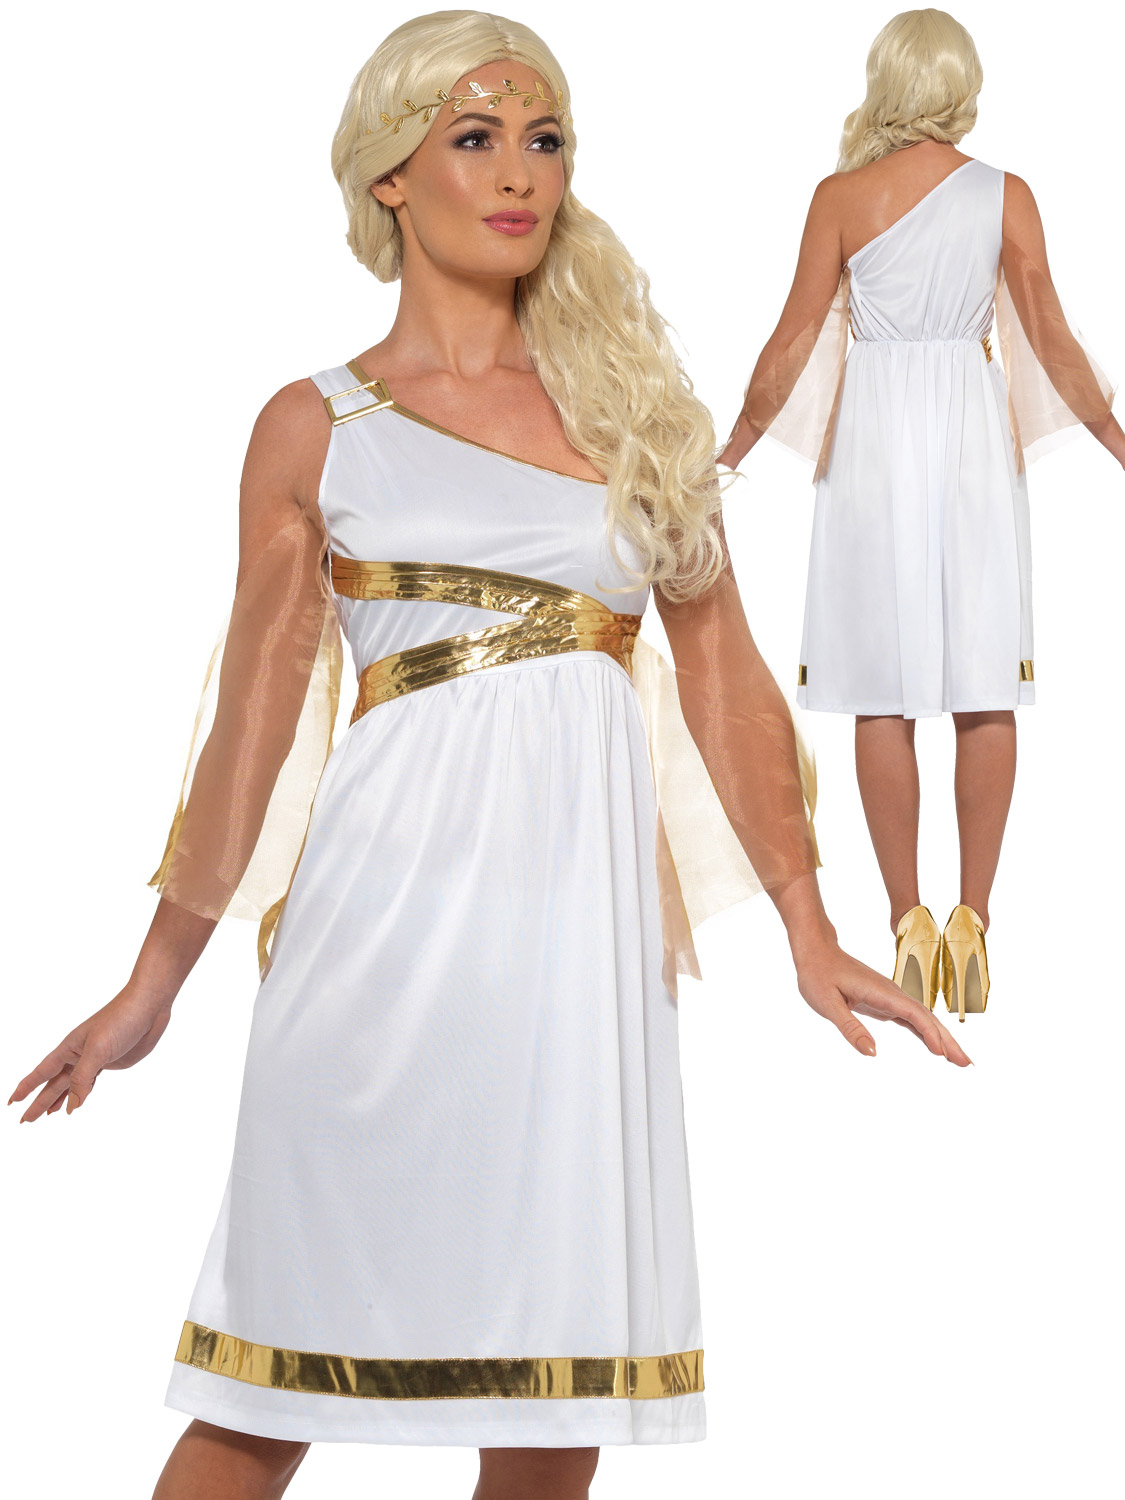 Ladies grecian costume adults toga roman greek goddess fancy dress transform yourself into a roman princess with this ladies grecian goddess costume perfect for toga themed parties solutioingenieria Images